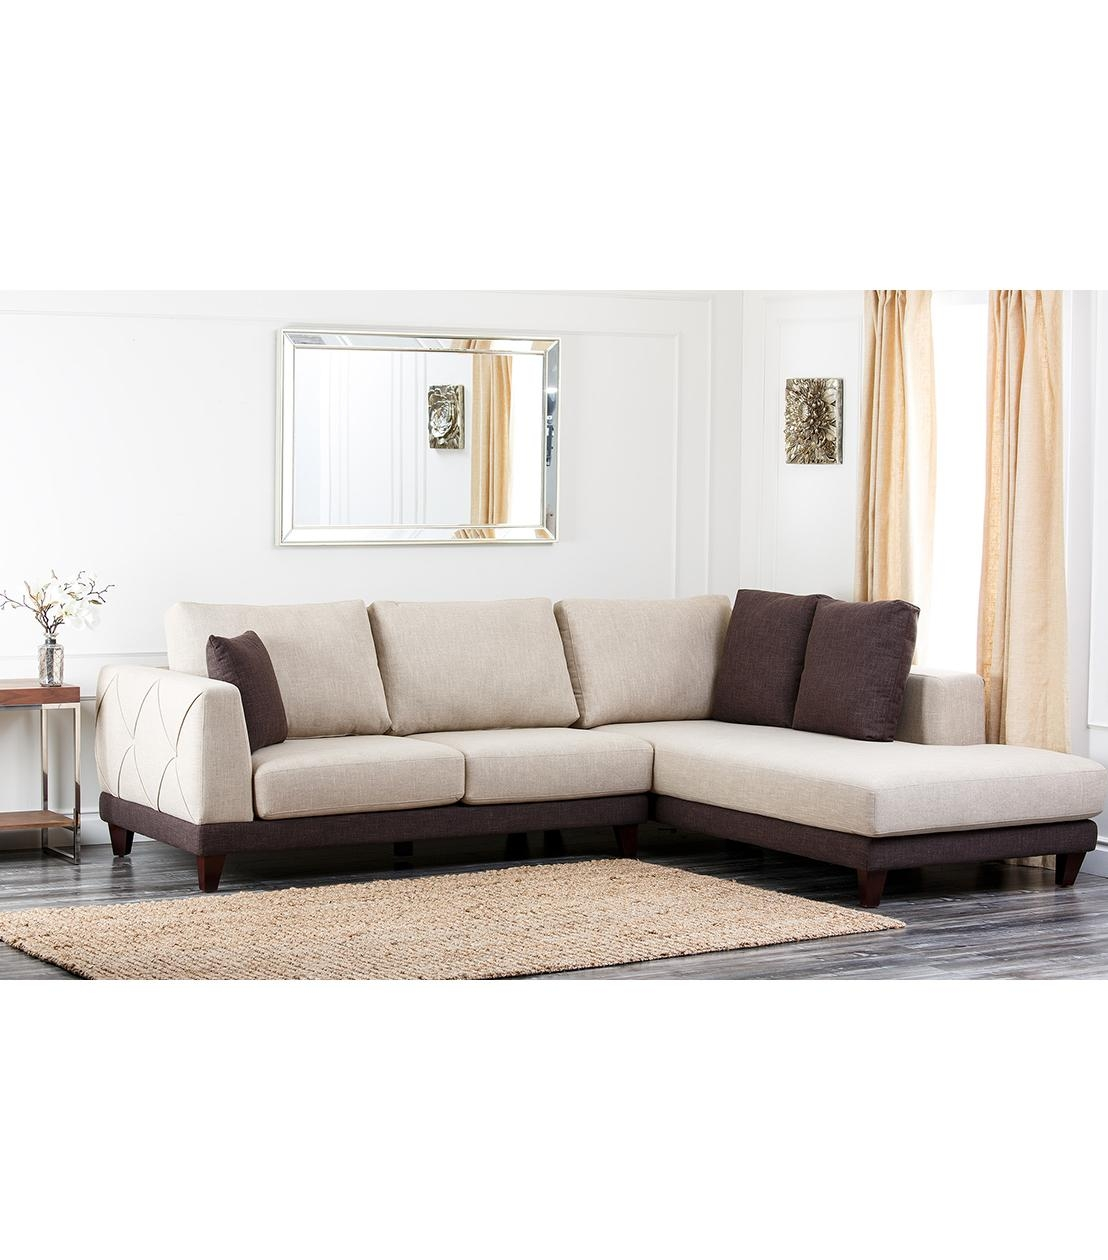 Sectionals For Abbyson Sectional Sofas (Image 14 of 20)